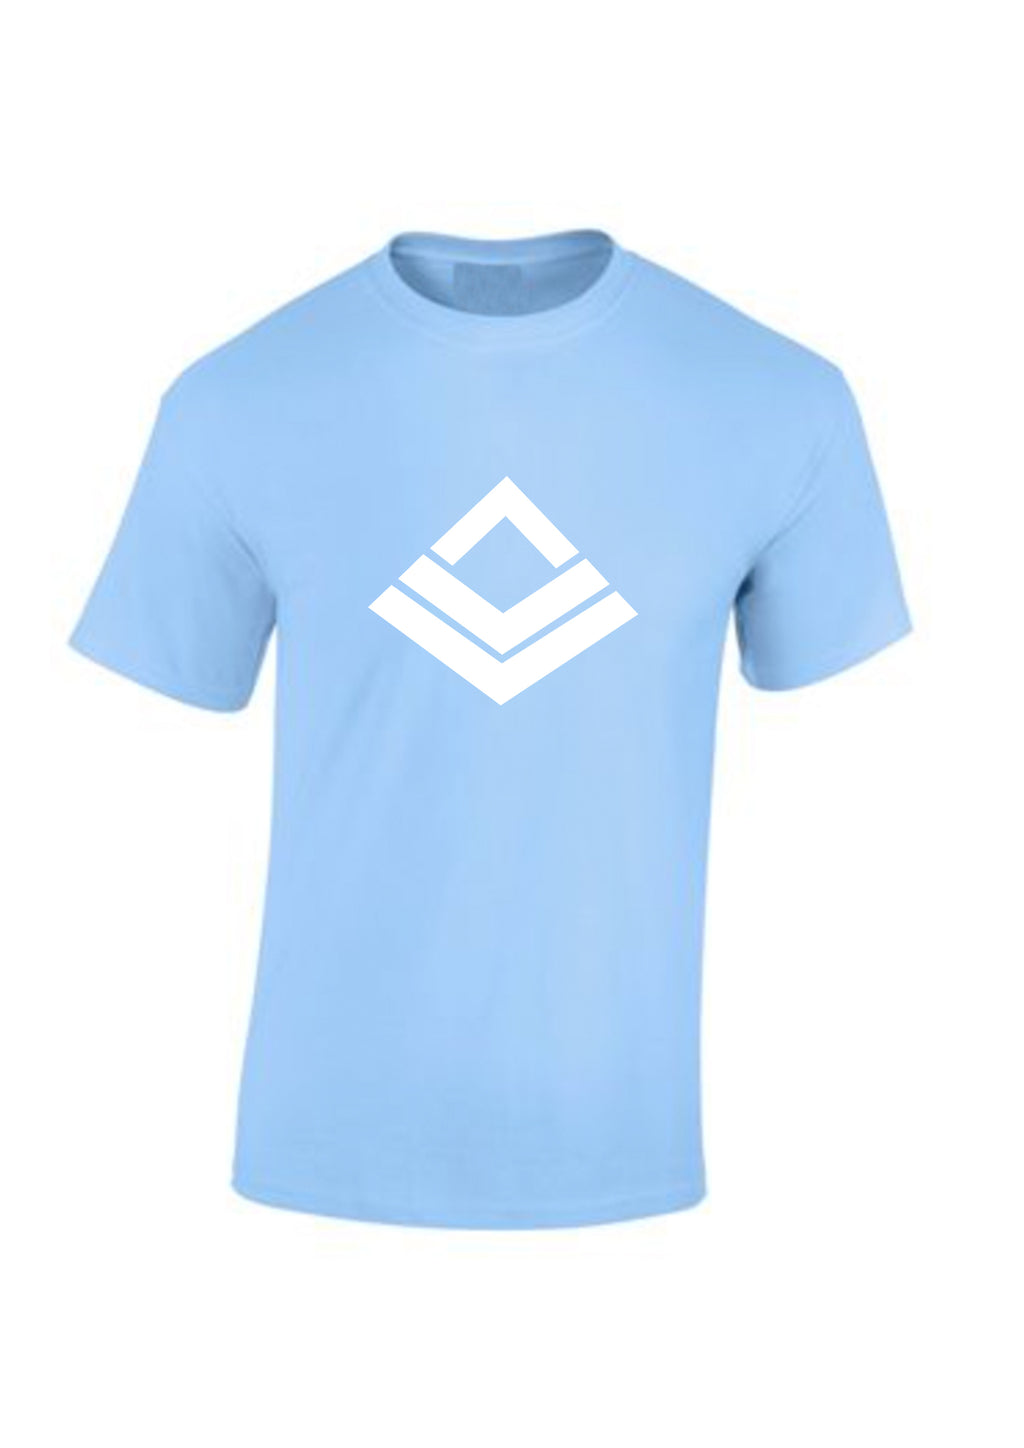 Swaggerlicious Classic London Light Blue T-Shirt - swaggerlicious-clothing.com